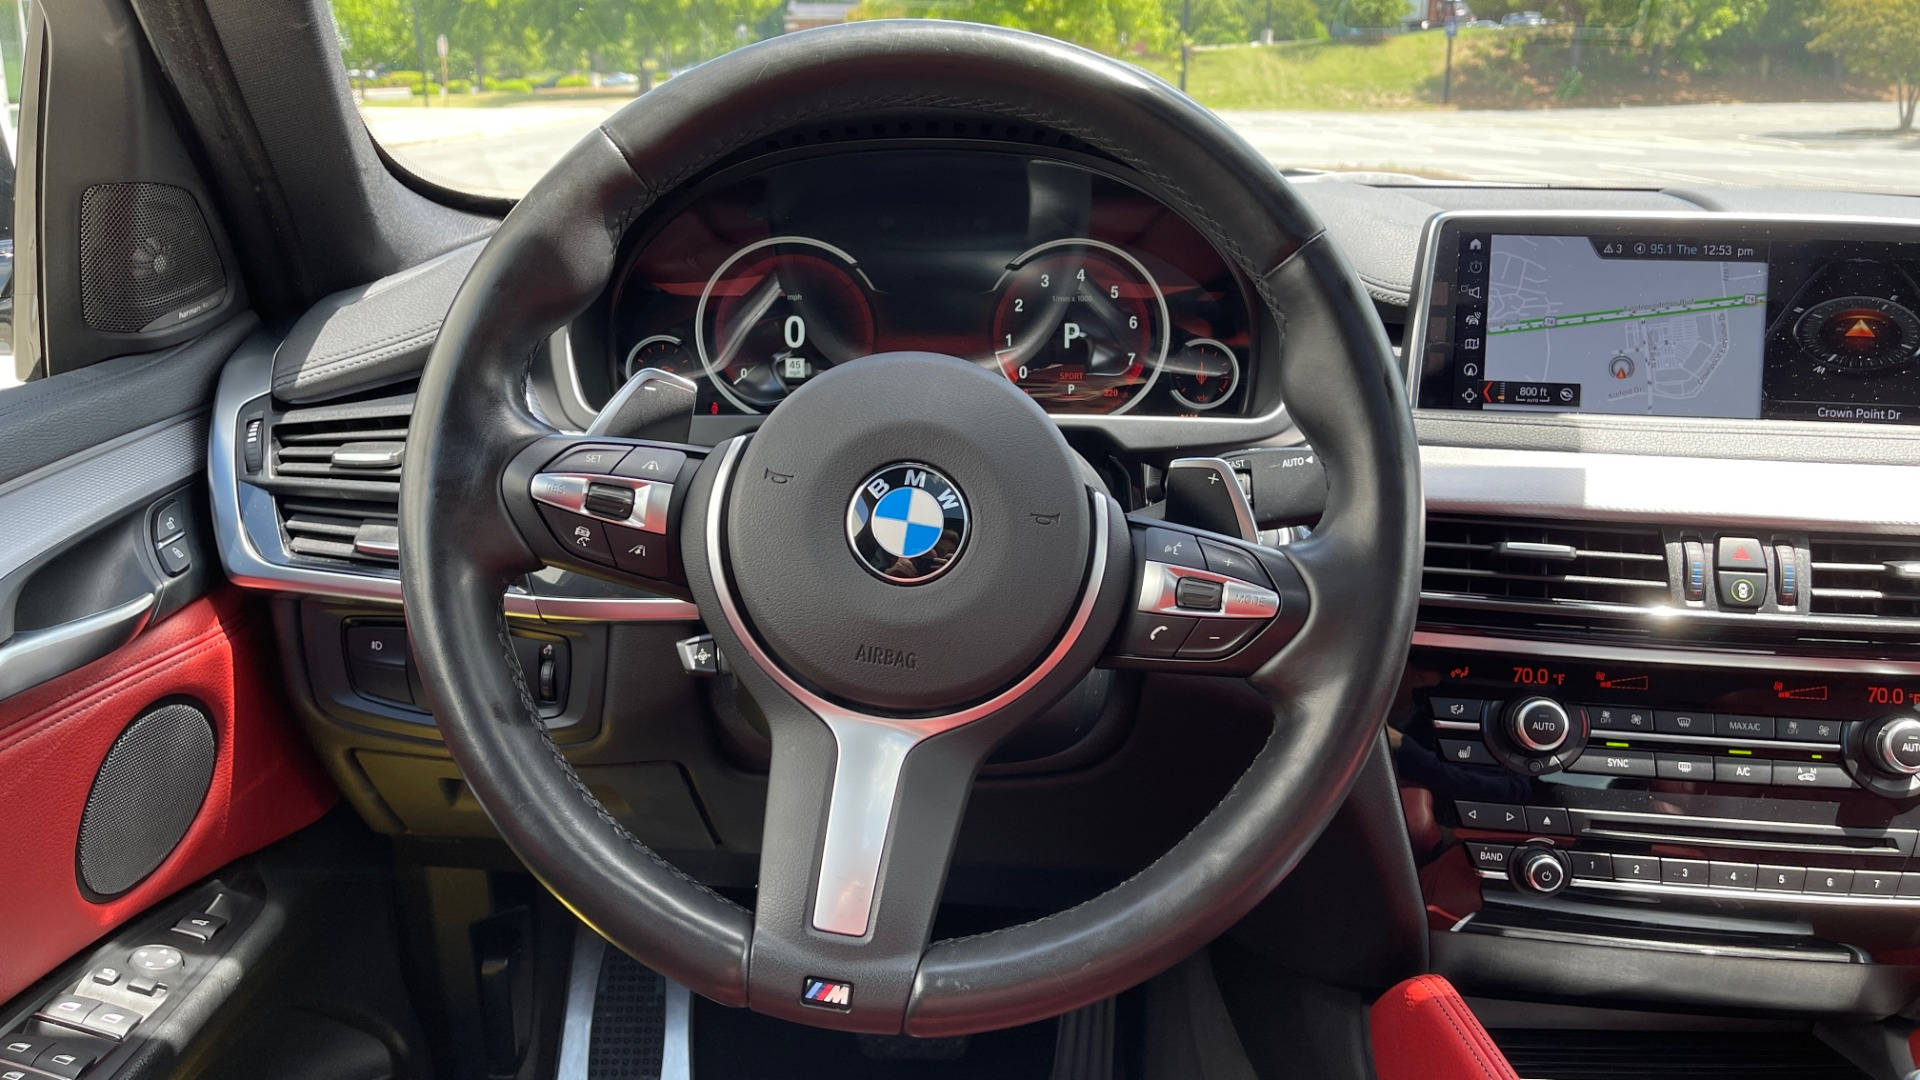 Used 2018 BMW X6 XDRIVE35I M-SPORT / NAV / DRVR ASST PLUS / ADAPT M-SUSP / REARVIEW for sale Sold at Formula Imports in Charlotte NC 28227 83